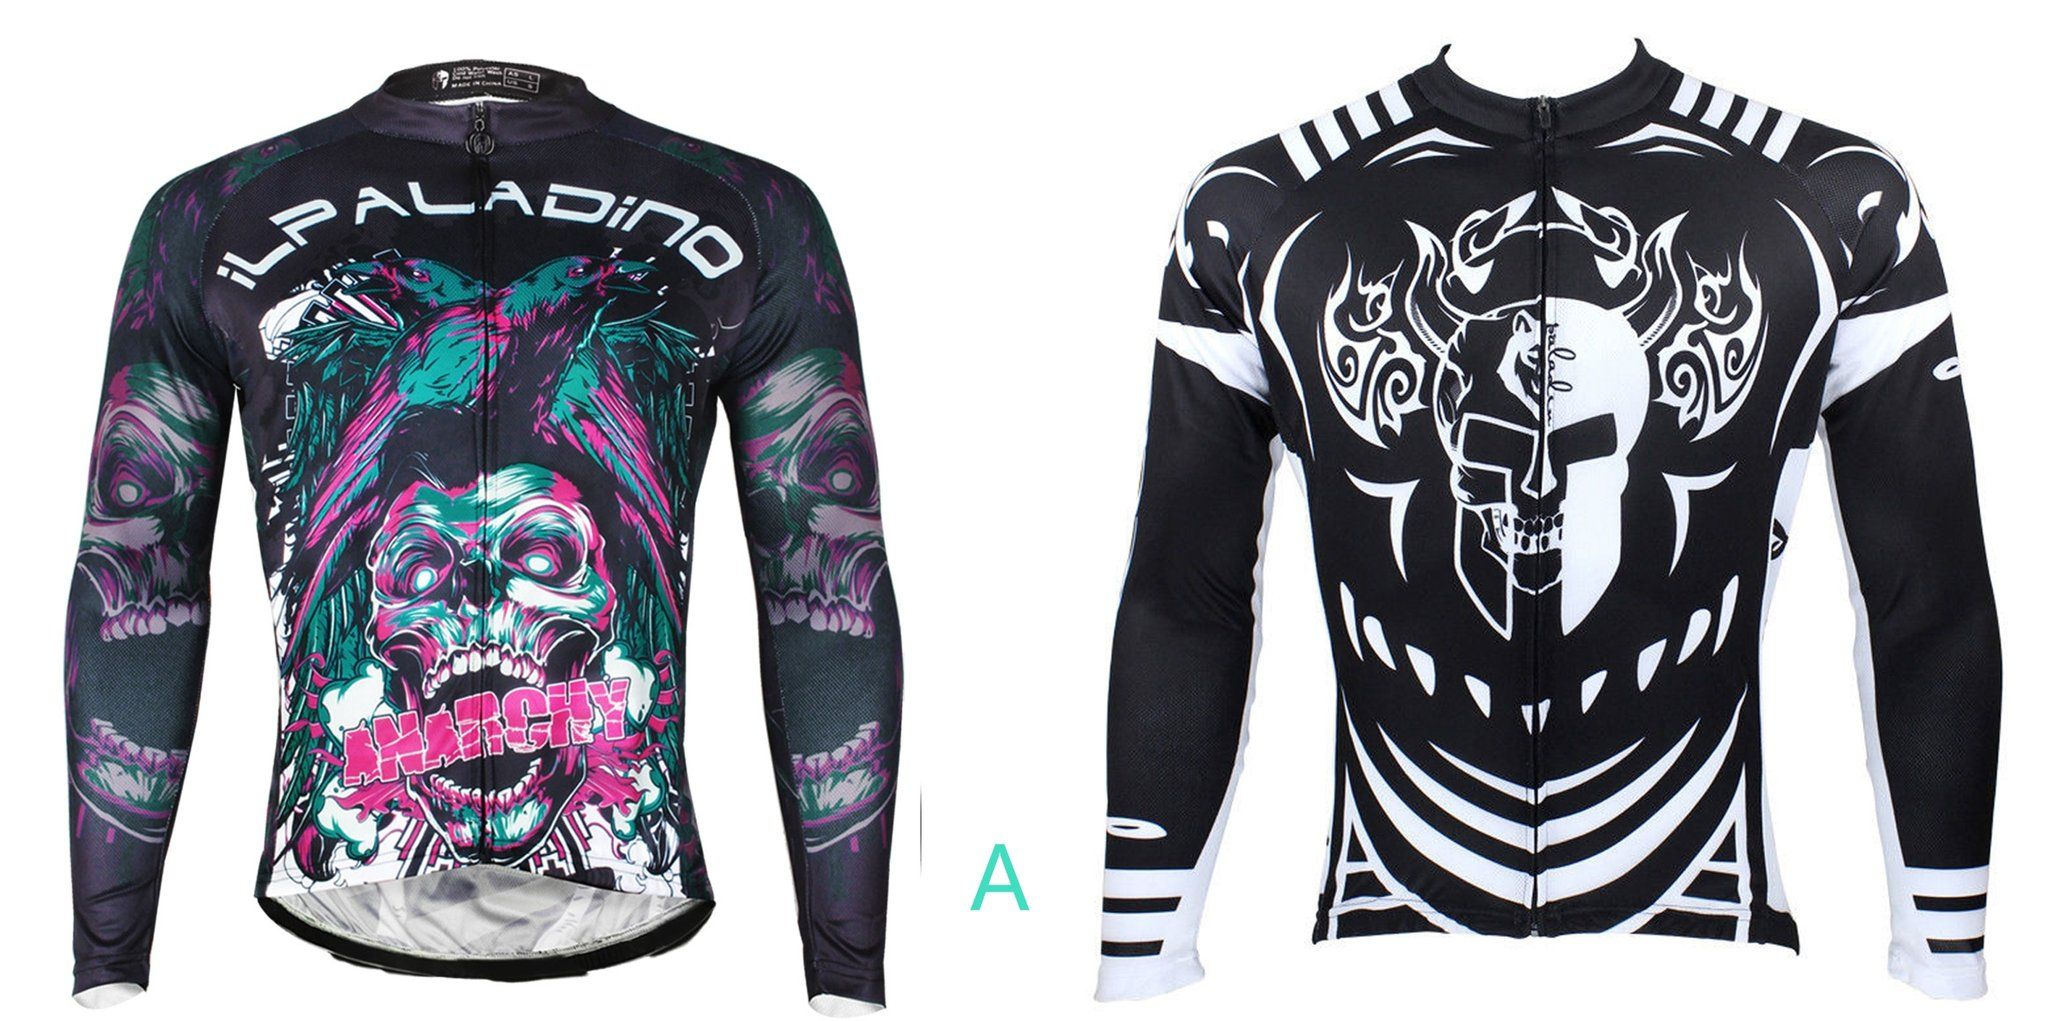 30.99 for Two Men s Cycling Jerseys Short long-sleeve Spring Summer  Sportswear Pro Cycle Clothing Racing Apparel Outdoor Sports Leisure Biking  T-shirt ... a53b1bd8f